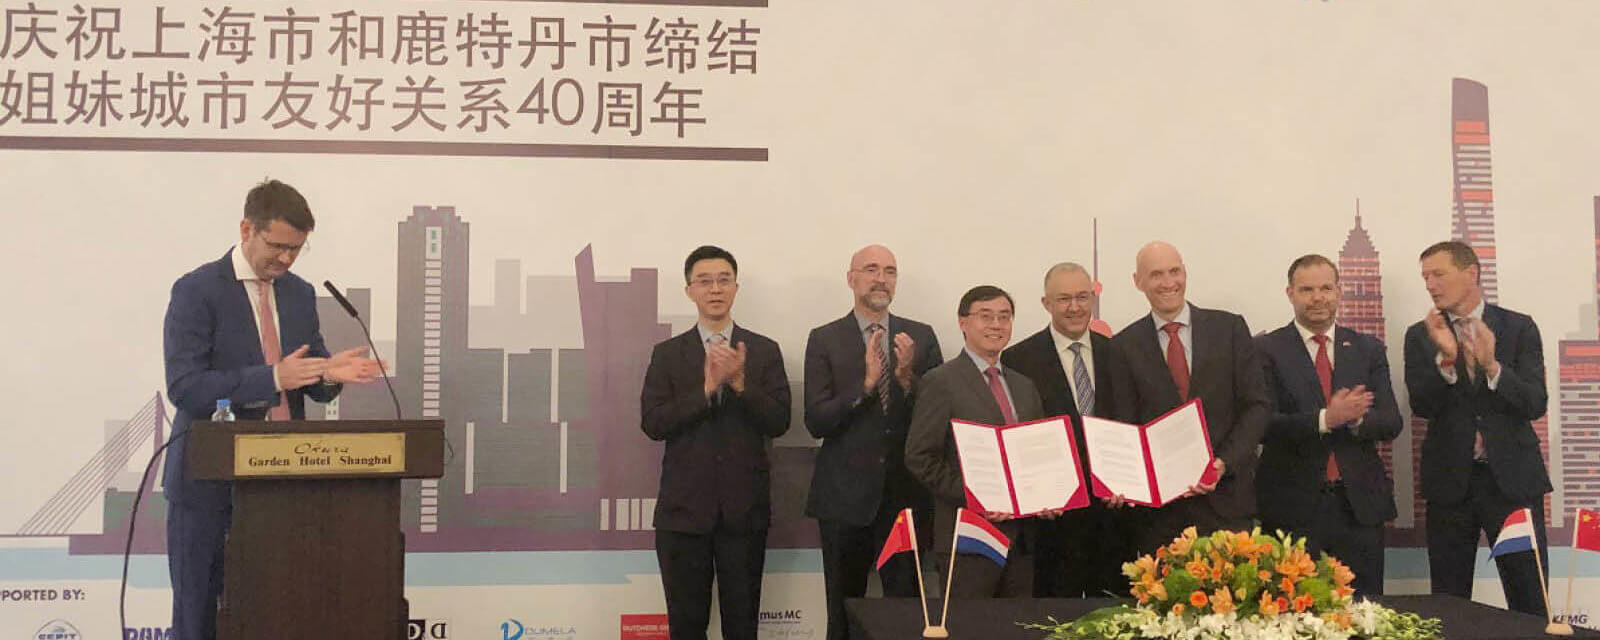 Harbour BioMed and Erasmus MC Sign MoU to Advance Next-Generation Immuno-oncology